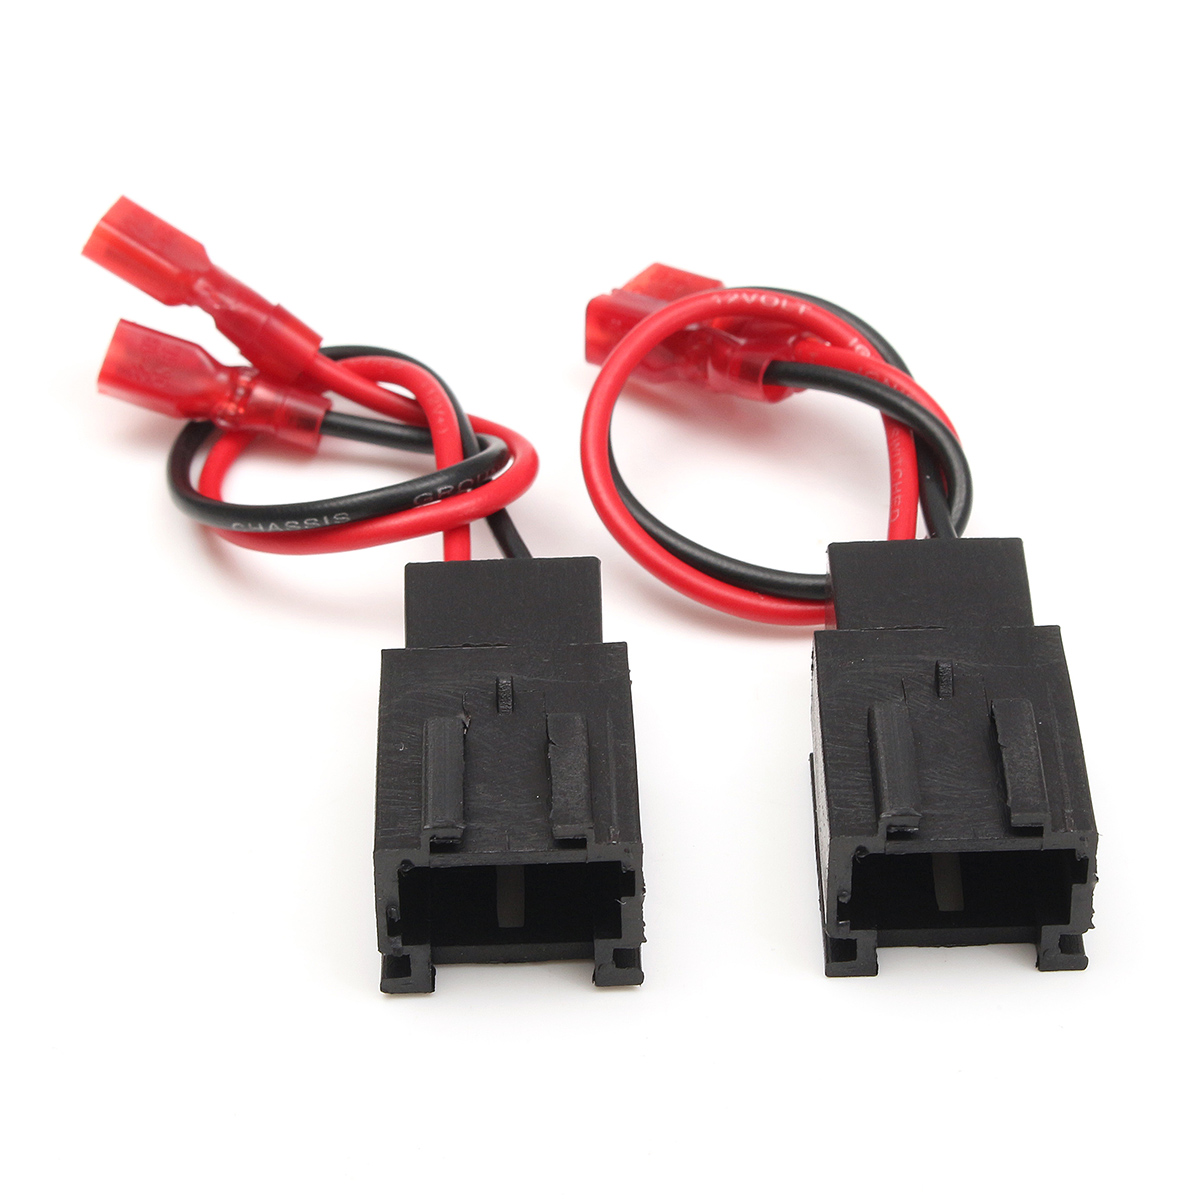 peugeot 206 citroen speaker adaptor lead loom connectors pc2 821 rh alexnld com Peugeot 306 Peugeot 307